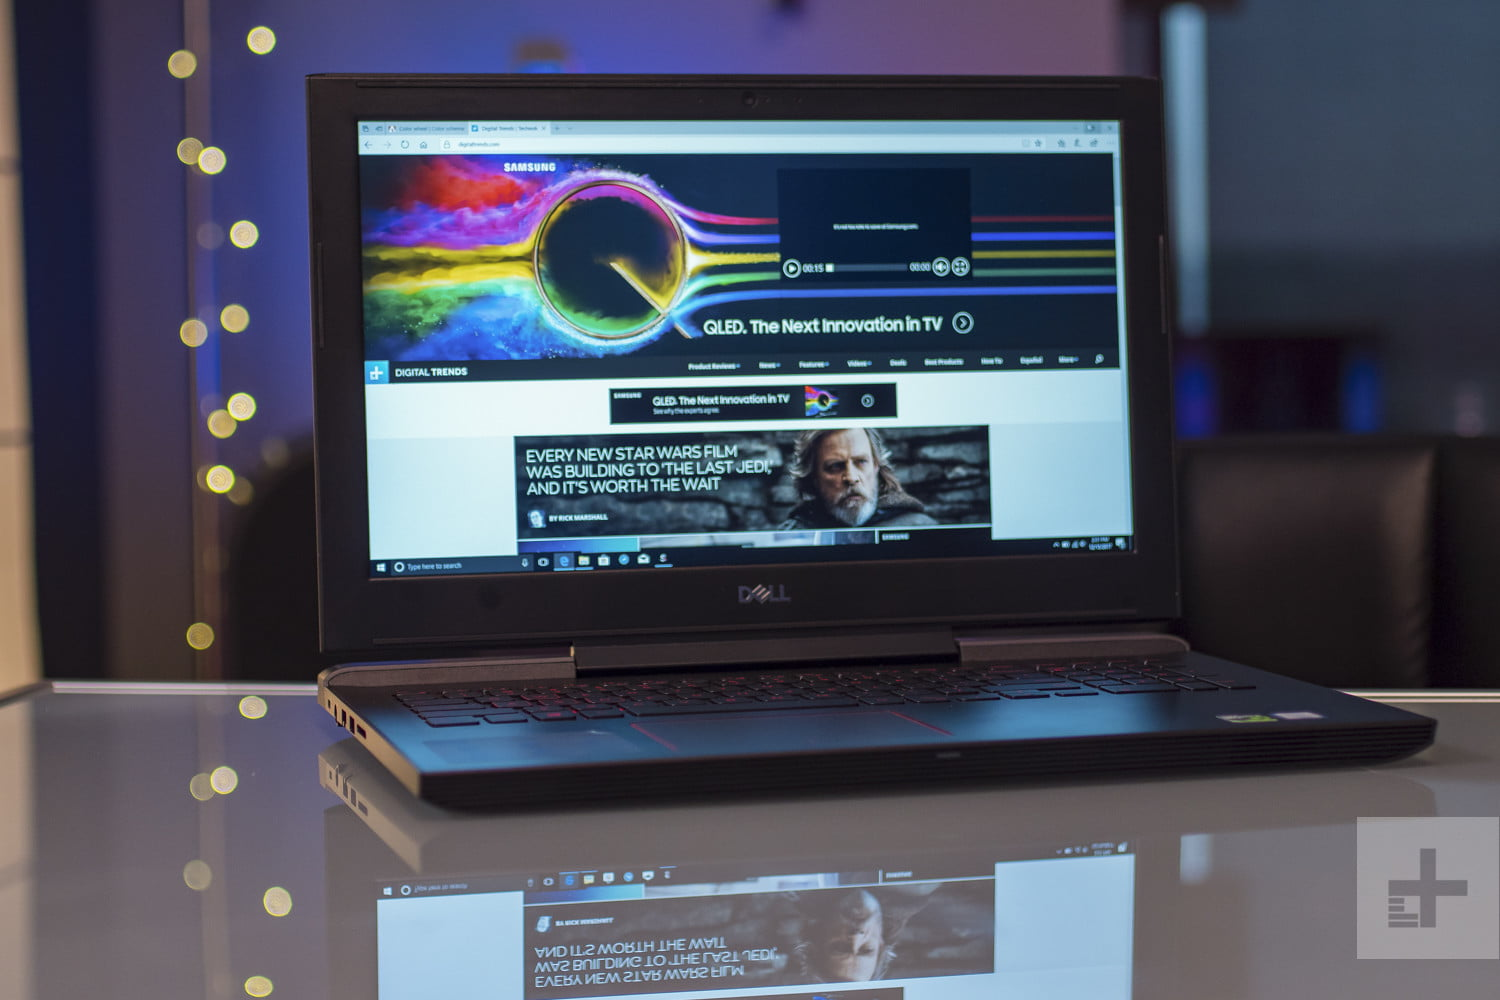 Dell Inspiron 15 7000 Review | Digital Trends